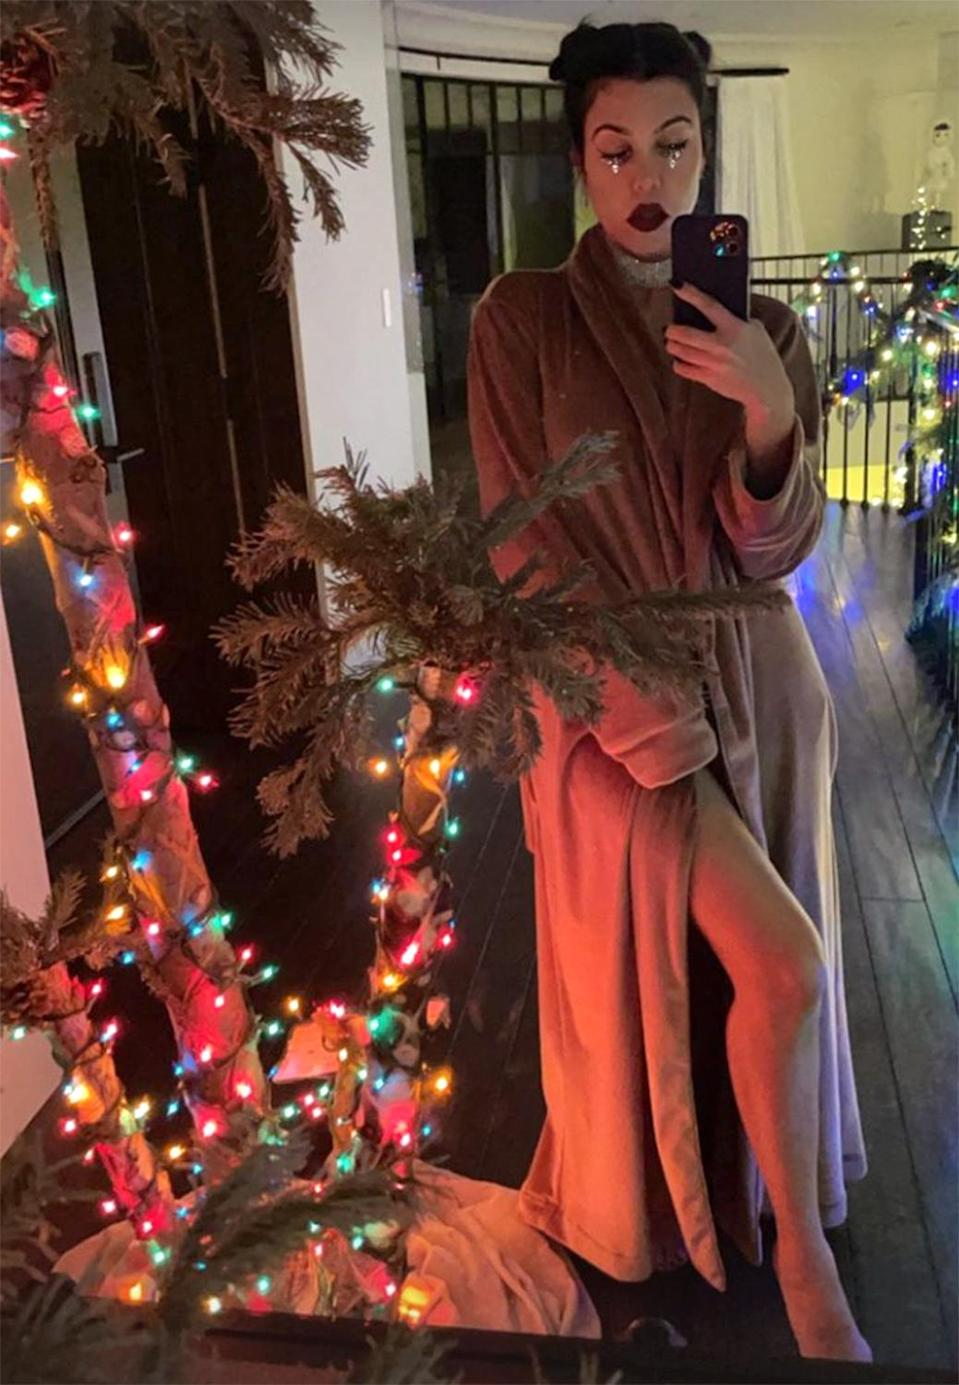 "<p>Kourtney looked <em>kozy</em> <a href=""https://www.instagram.com/kourtneykardash/"" rel=""nofollow noopener"" target=""_blank"" data-ylk=""slk:in a brown robe"" class=""link rapid-noclick-resp"">in a brown robe</a>, adding a dark lip and diamond choker for that New Year's Eve sparkle. </p>"